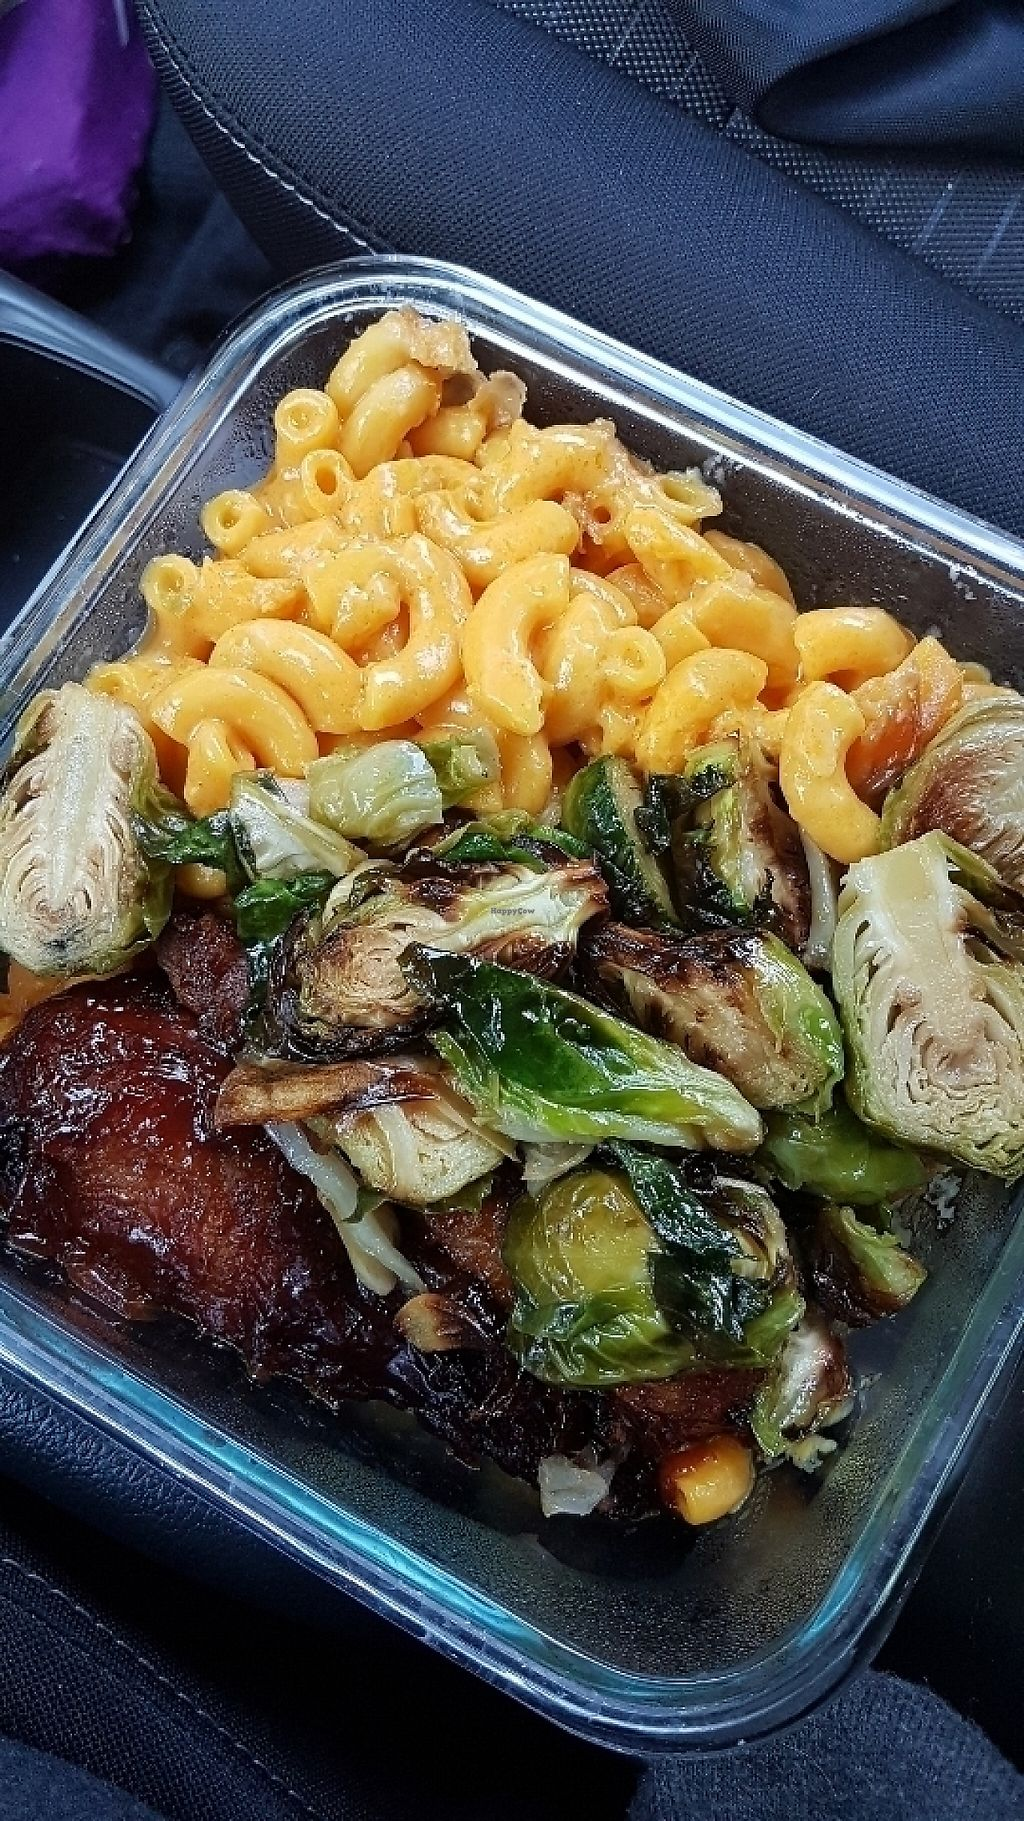 "Photo of Veggie Castle  by <a href=""/members/profile/unabashed"">unabashed</a> <br/>Brussels sprouts, drumsticks, and two portions of mac-n-cheese.  $8.75 and more than enough food for one person.   <br/> June 3, 2017  - <a href='/contact/abuse/image/9740/265467'>Report</a>"